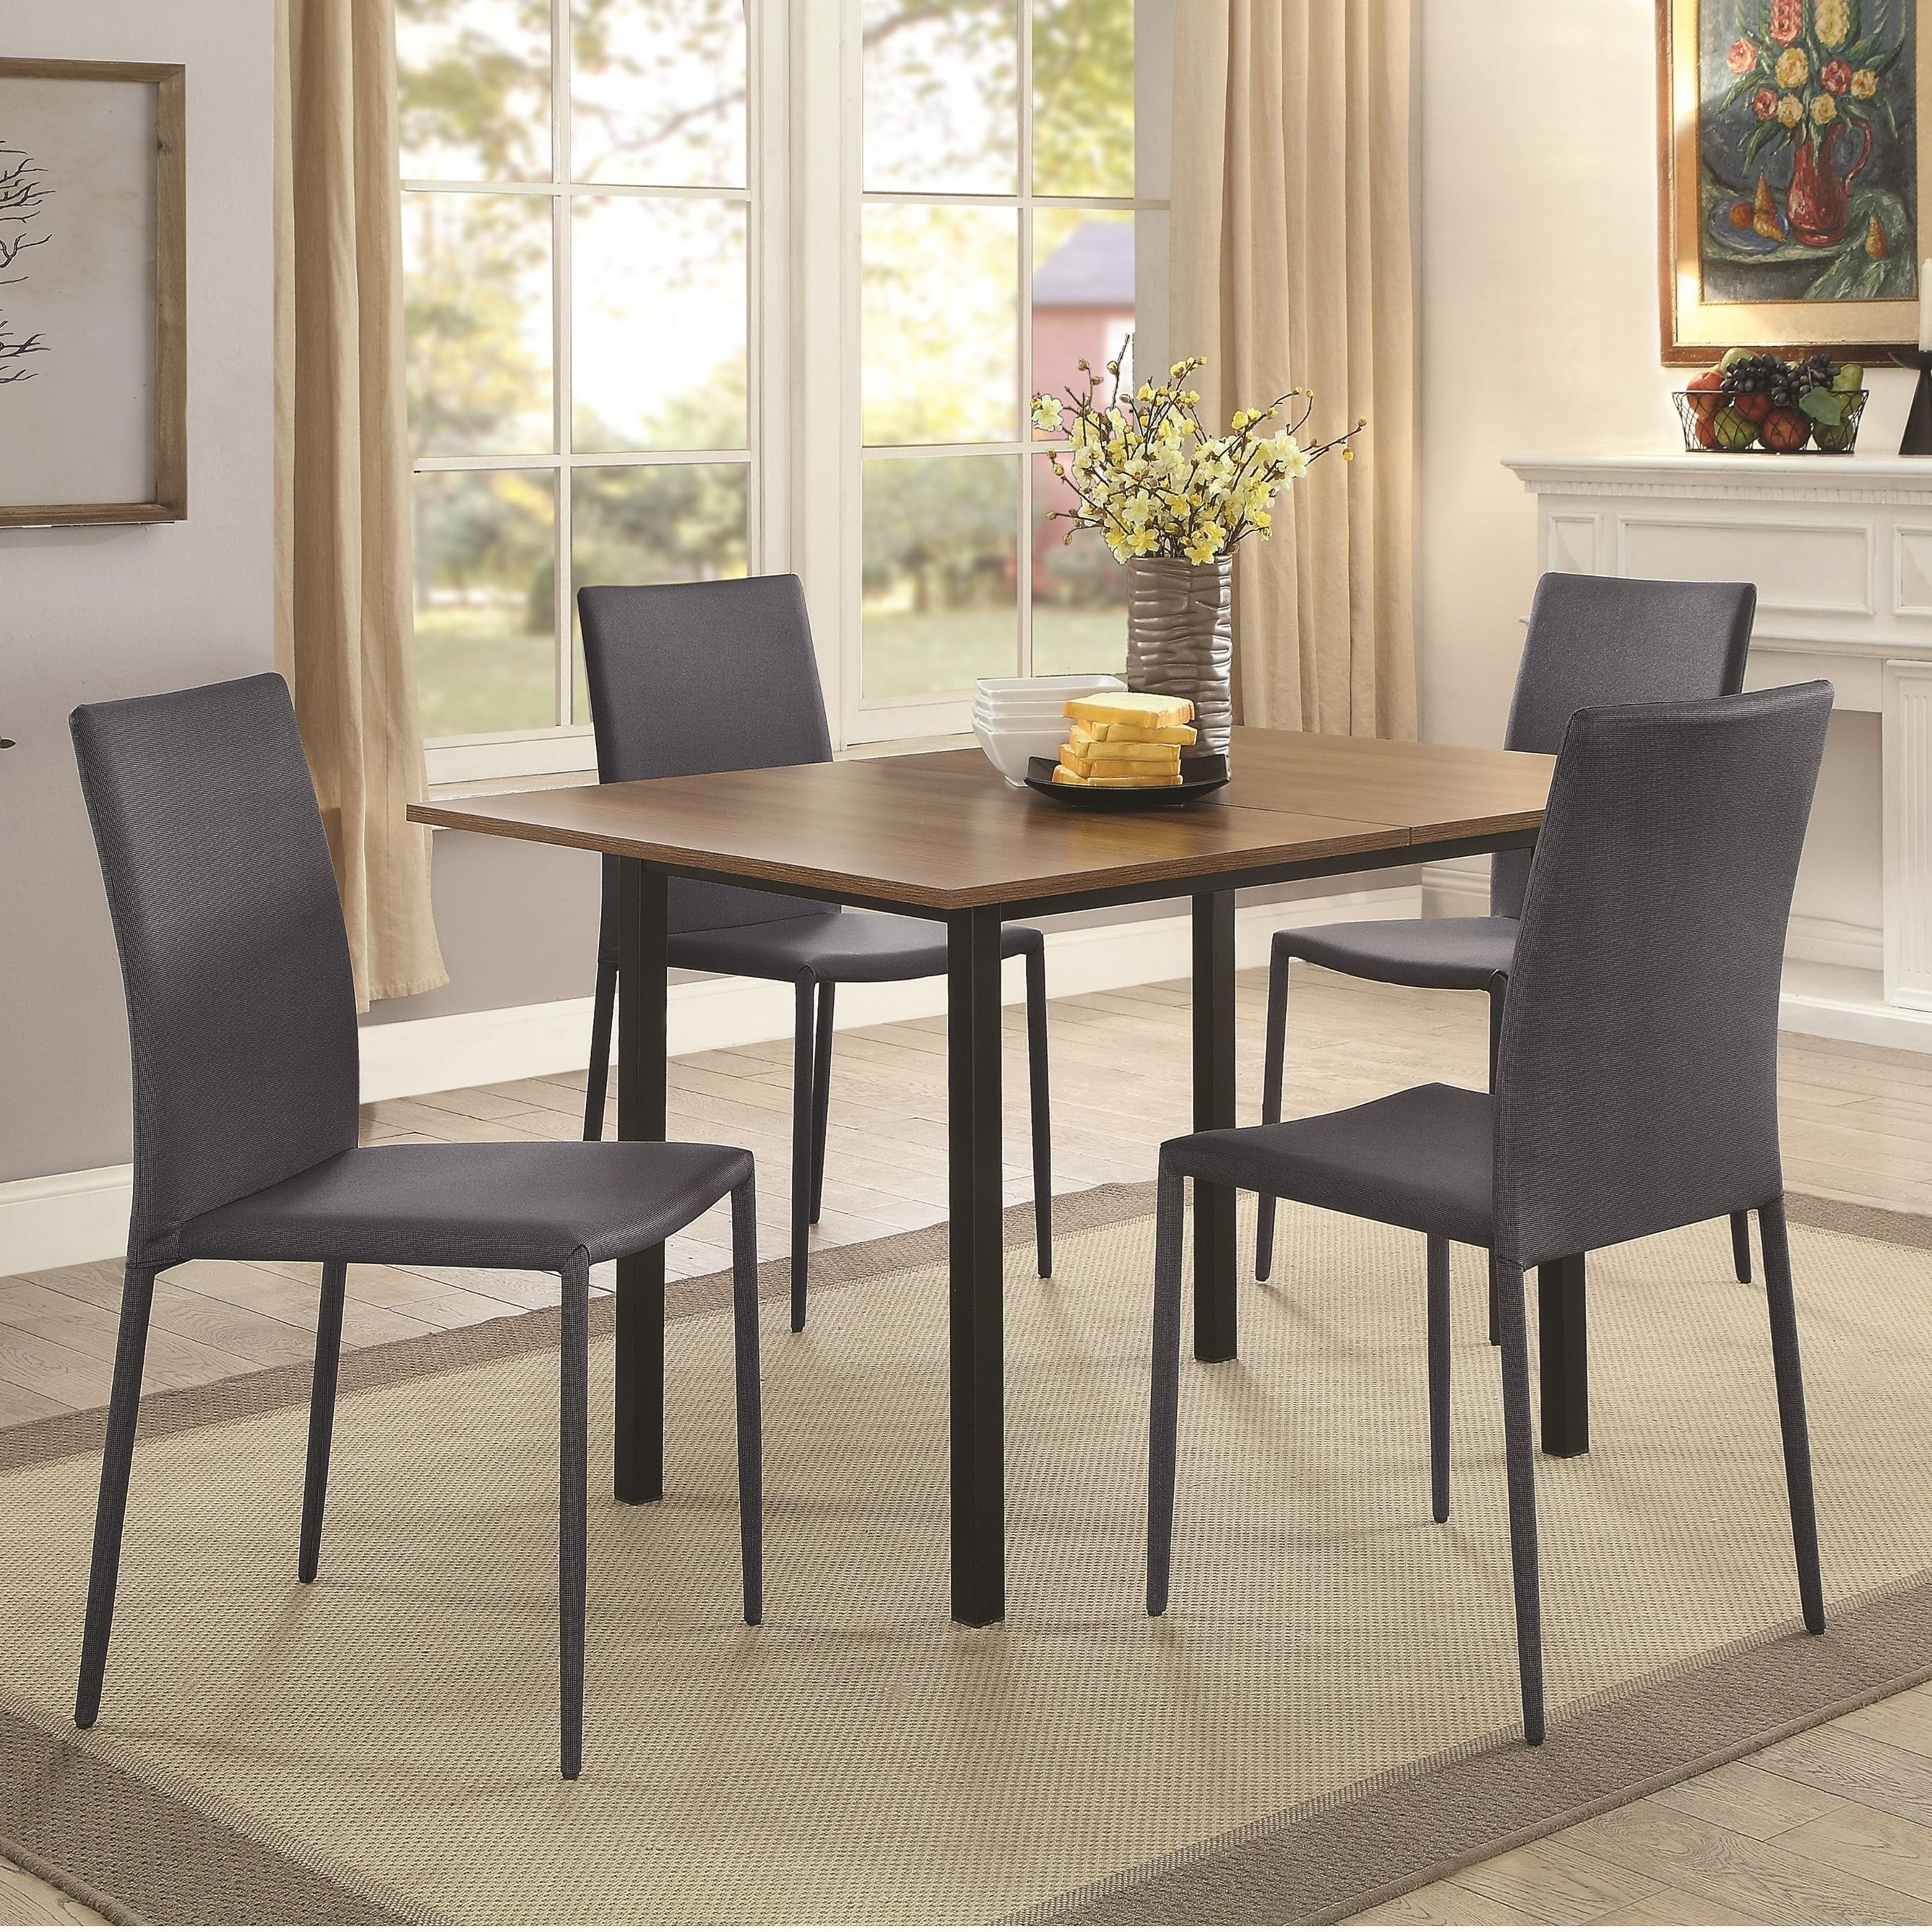 Coaster Adler Space Saving 5 Piece Dining Table Set   Coaster Fine Furniture